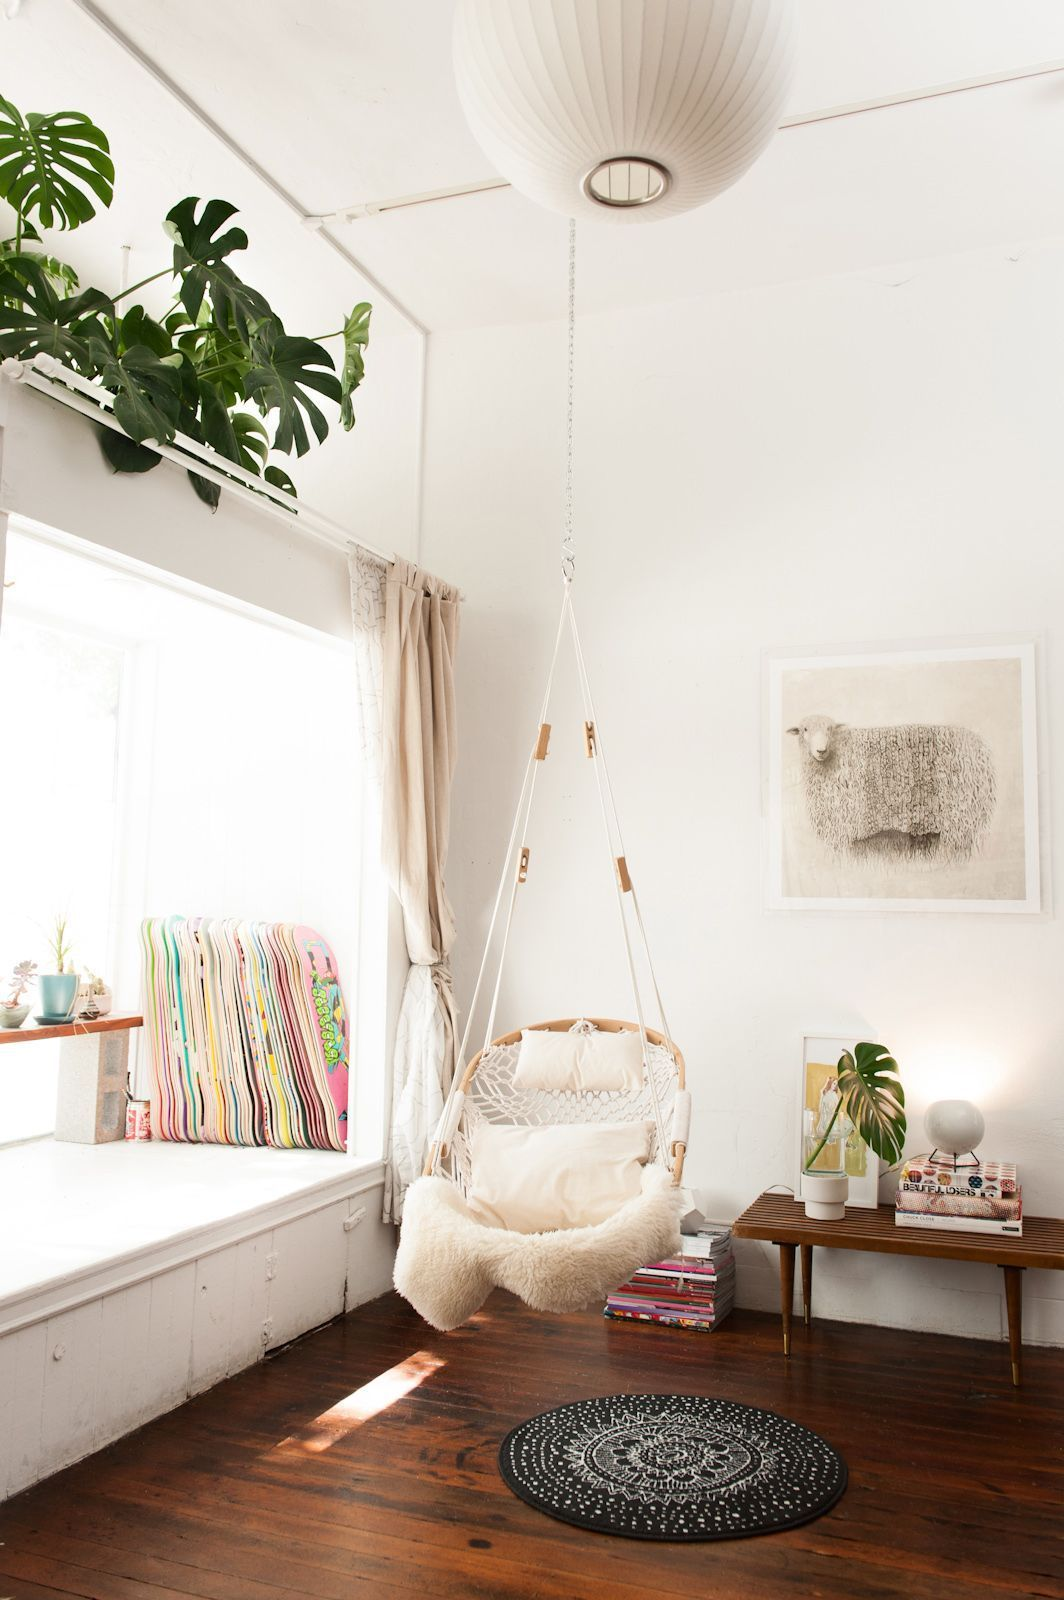 10 Ways To Use That Weird Corner Of Your Room Places